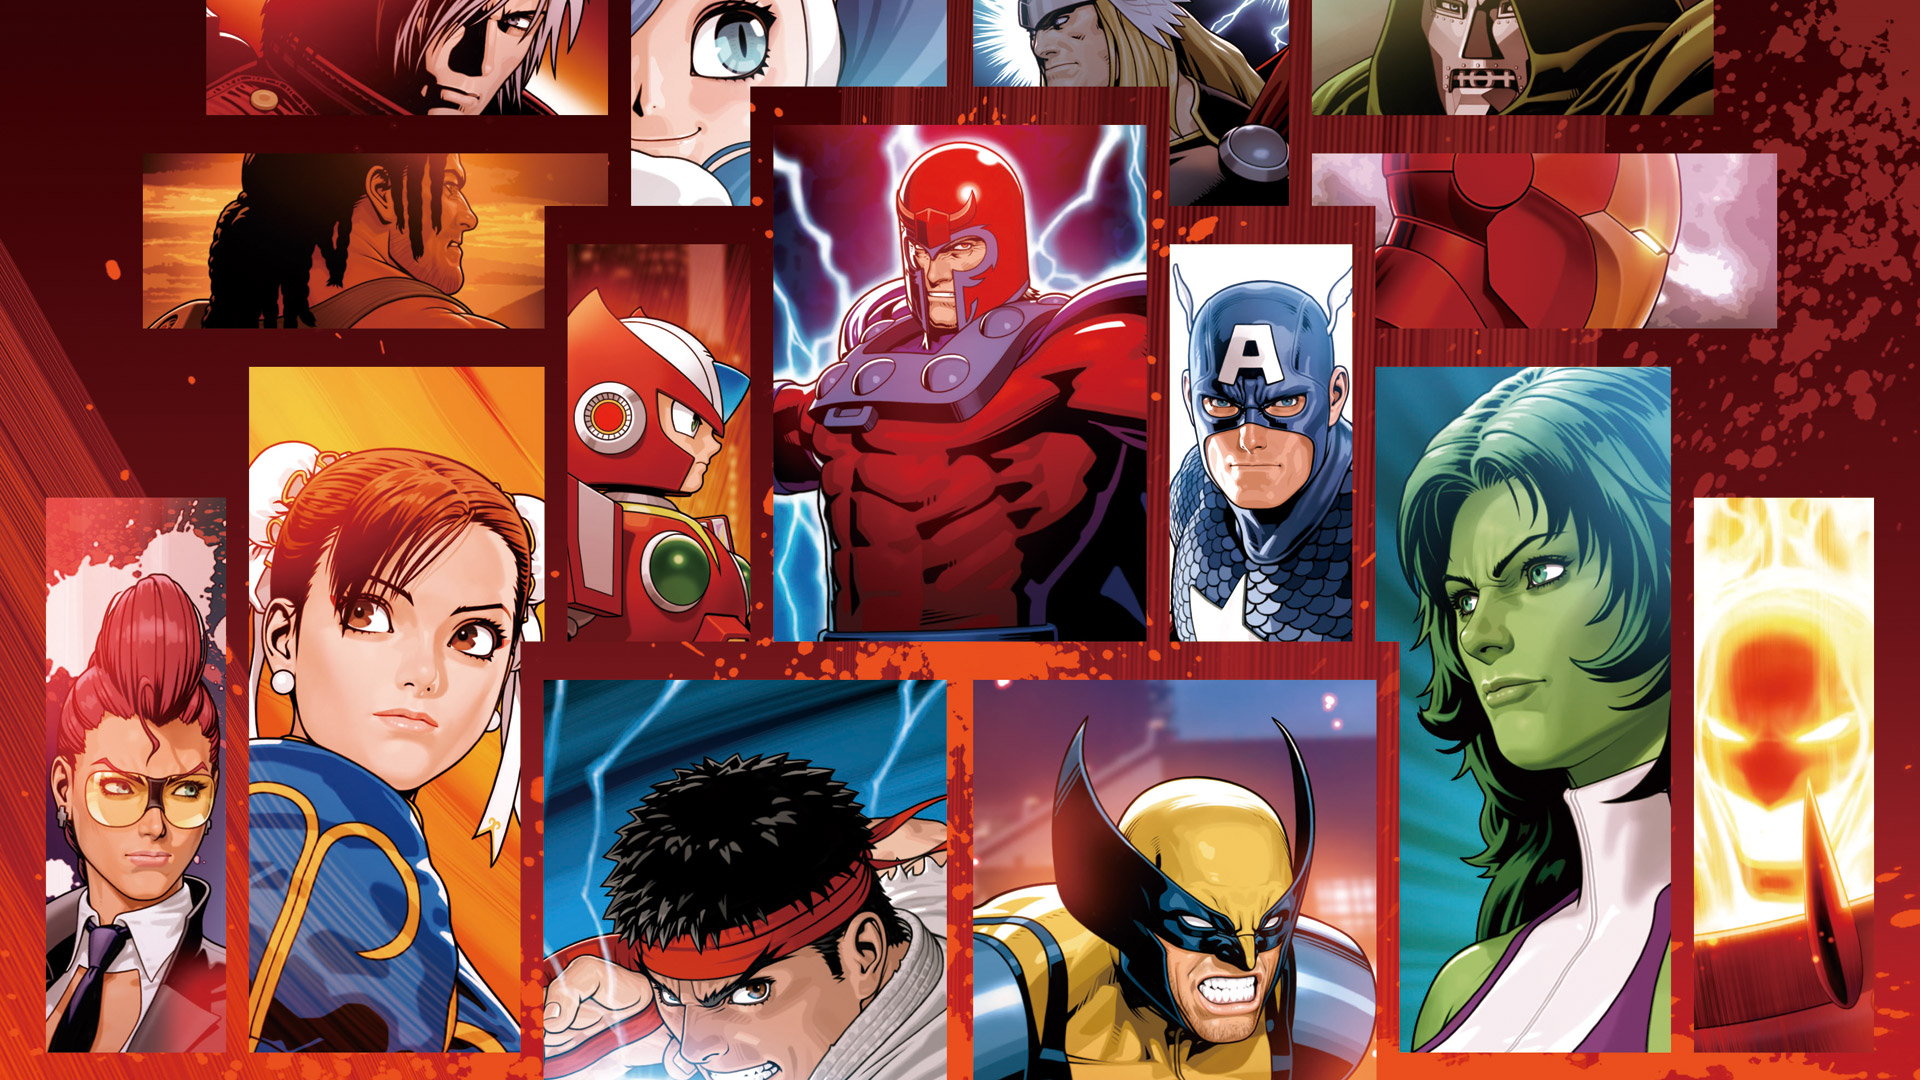 Marvel vs. Capcom 3: Fate of Two Worlds Wallpaper in 1920x1080